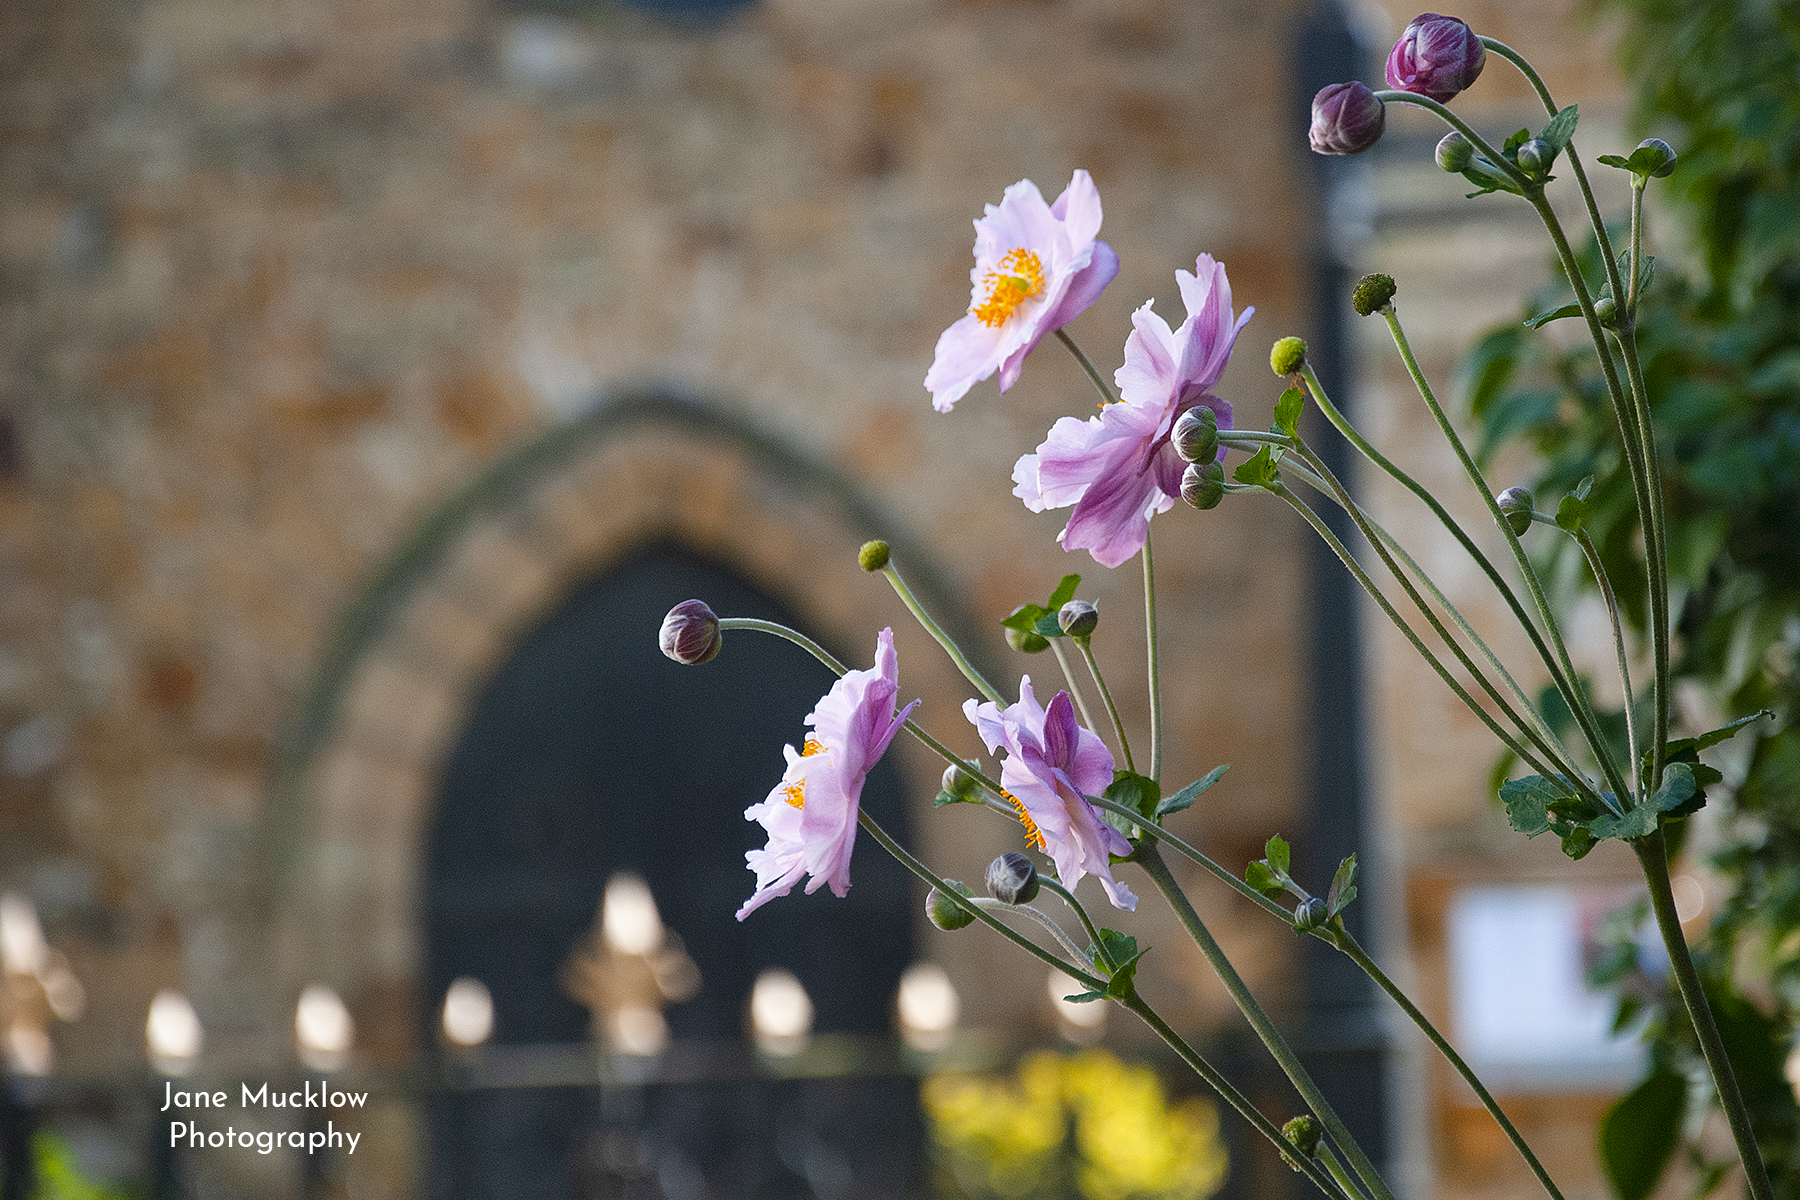 Photo of Japanese Anemones at Tonbridge Parish Church, by Jane Mucklow